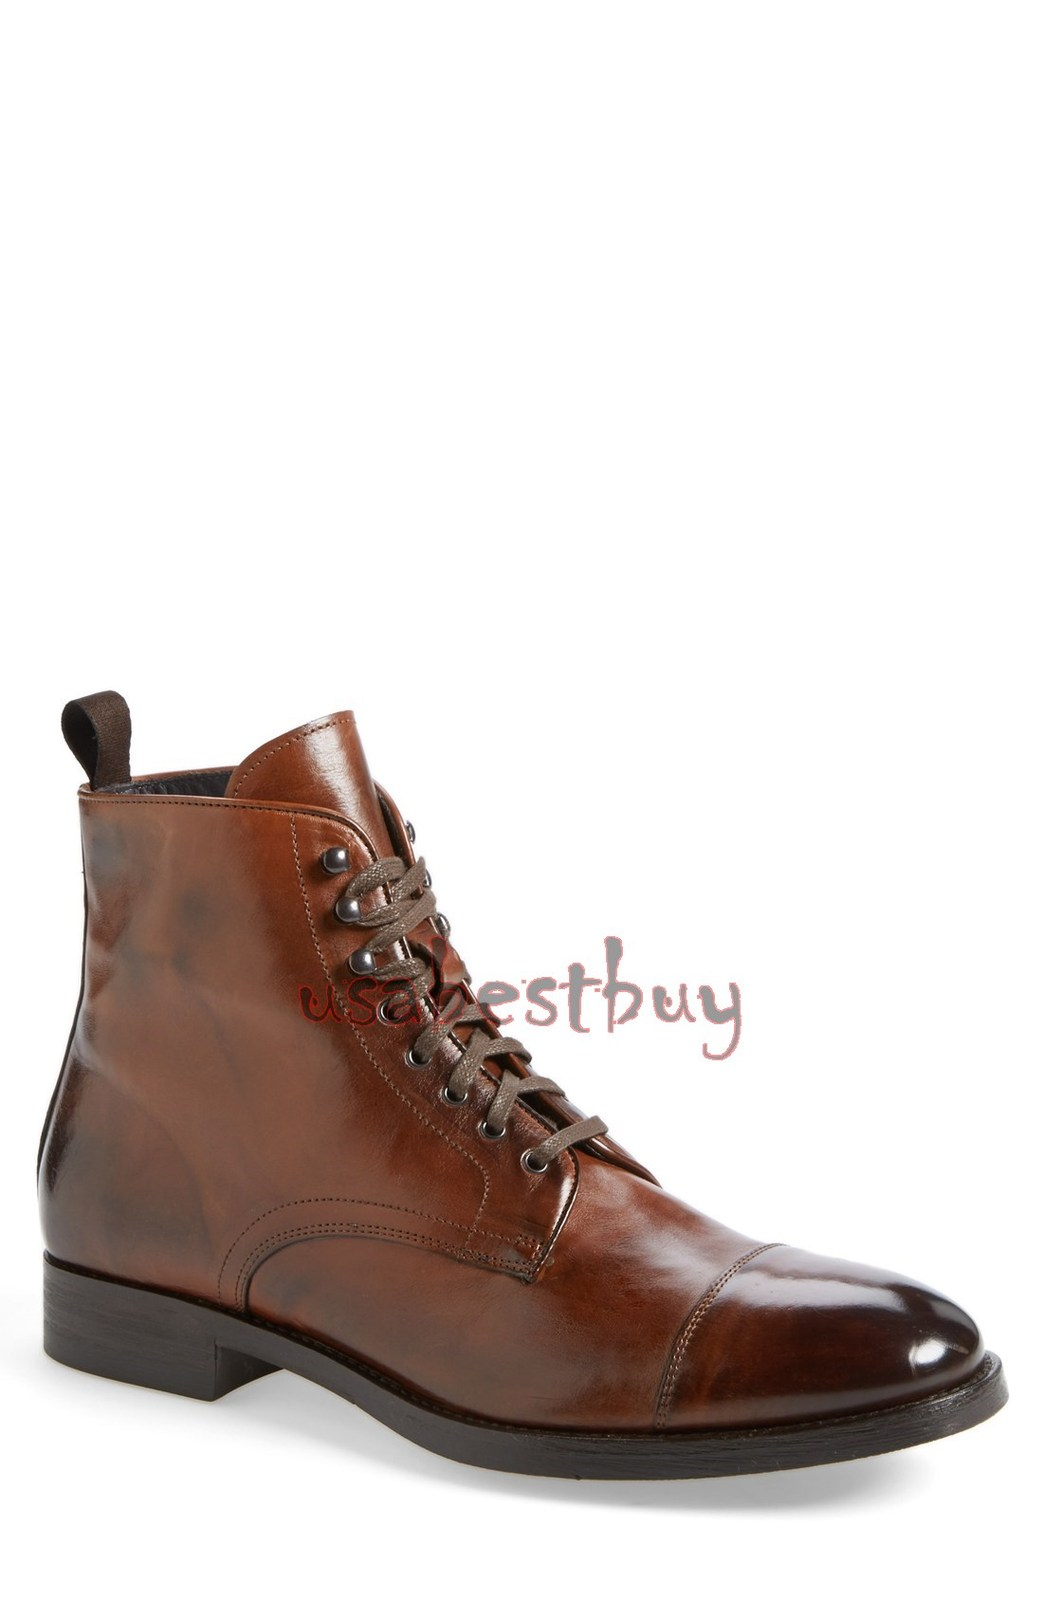 New Handmade Chukka Latest Style Real Leather Boots, Men Brown leather boots